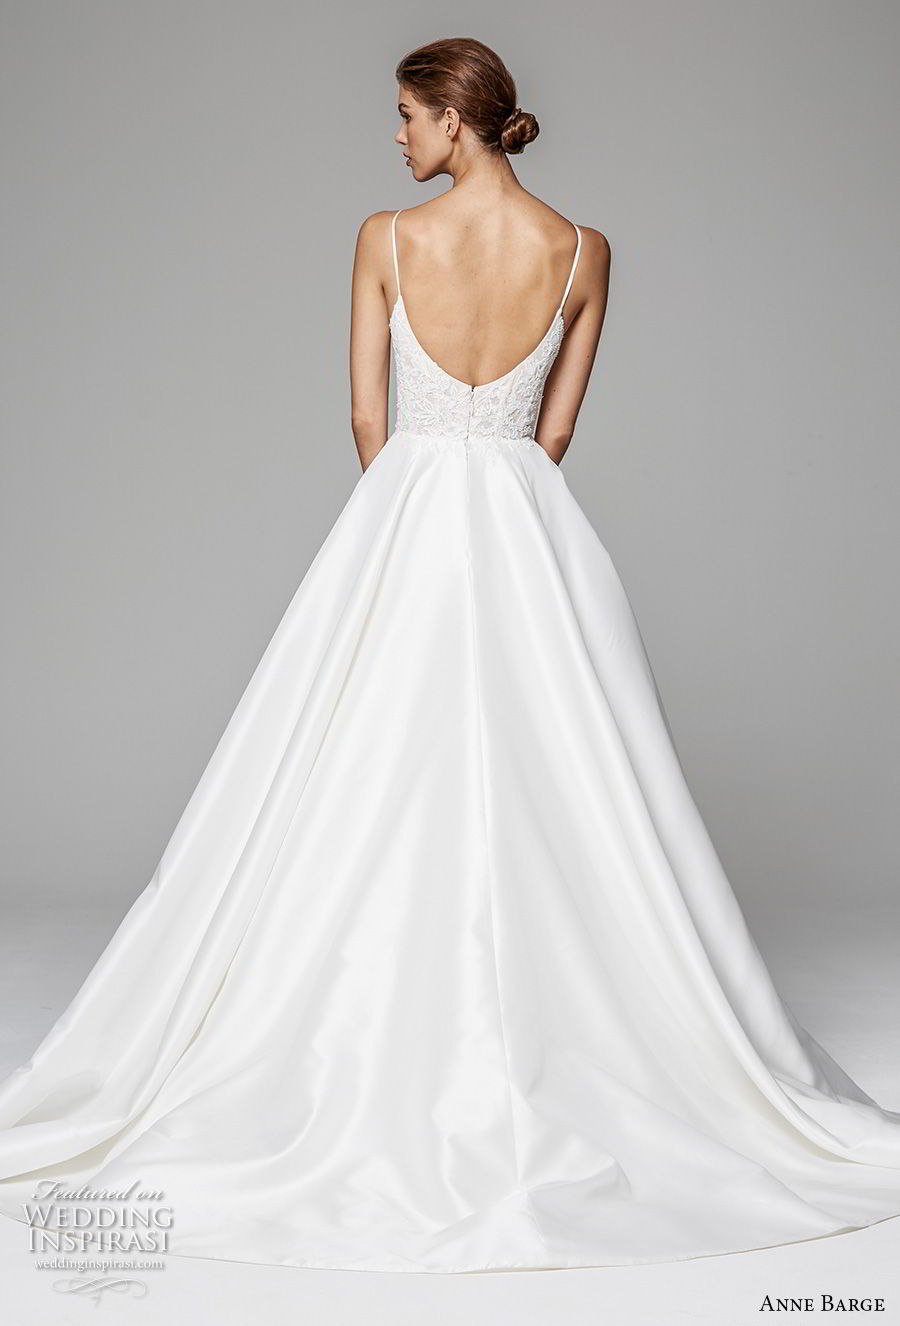 anne barge fall 2018 bridal sleeveless spaghetii sweetheart neckline heavily embellished bodice romantic princess a  line wedding dress open back sweep train (10) bv